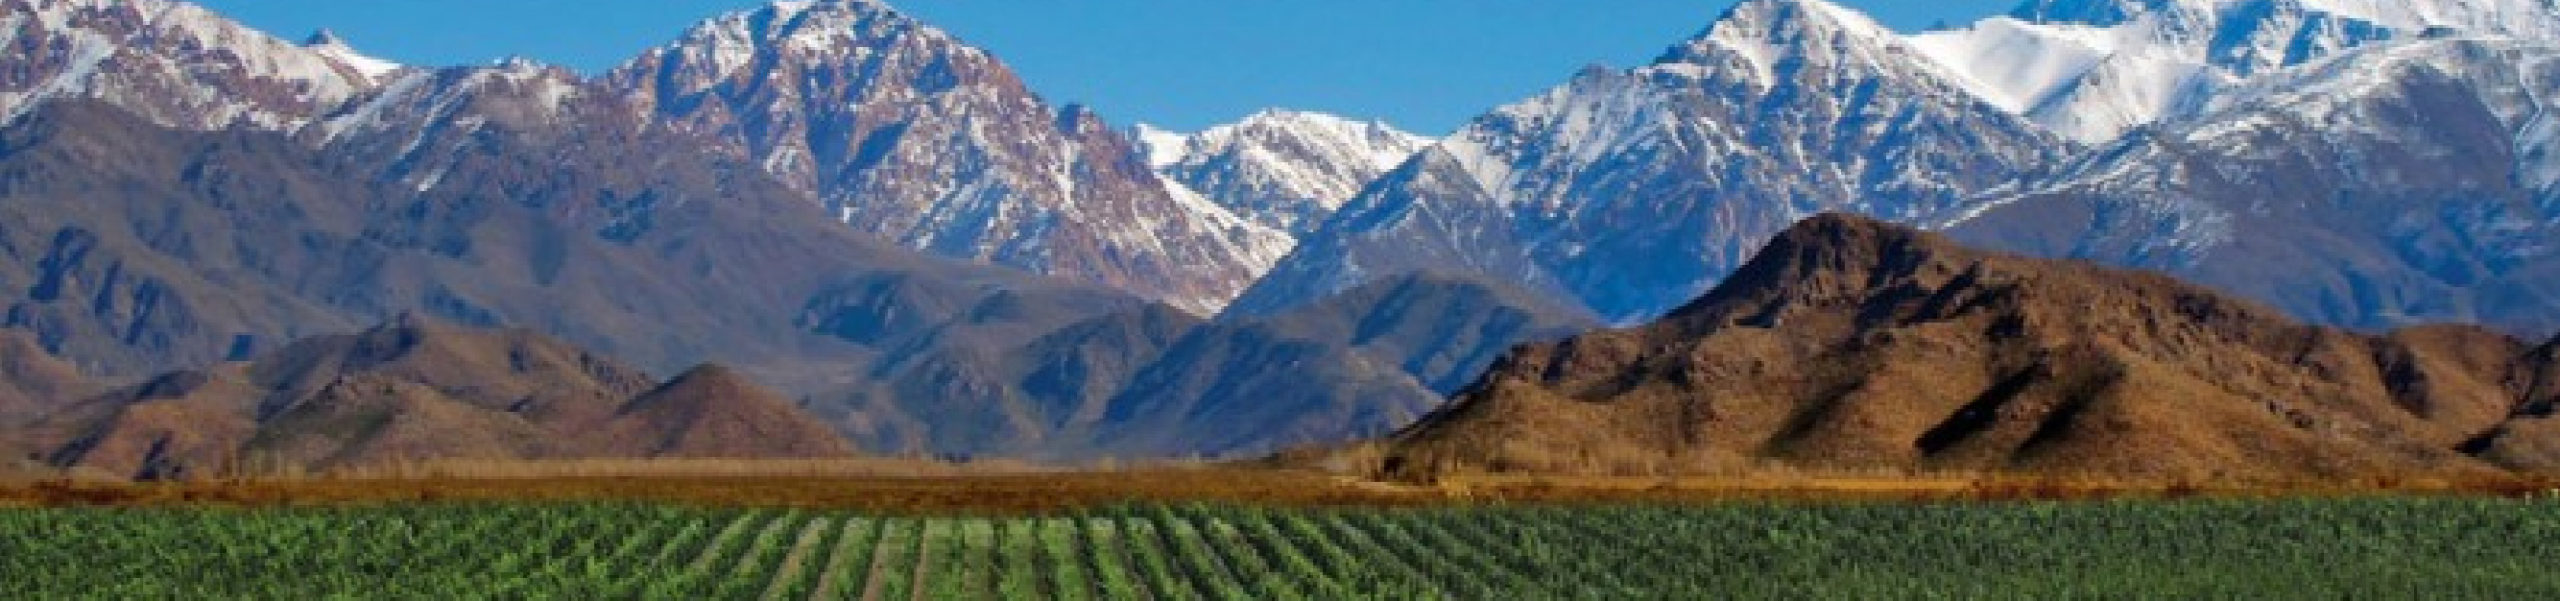 Vineyards and Wineries in Mendoza Wine Country - Argentina. RipioTurismo DMC for Argentina